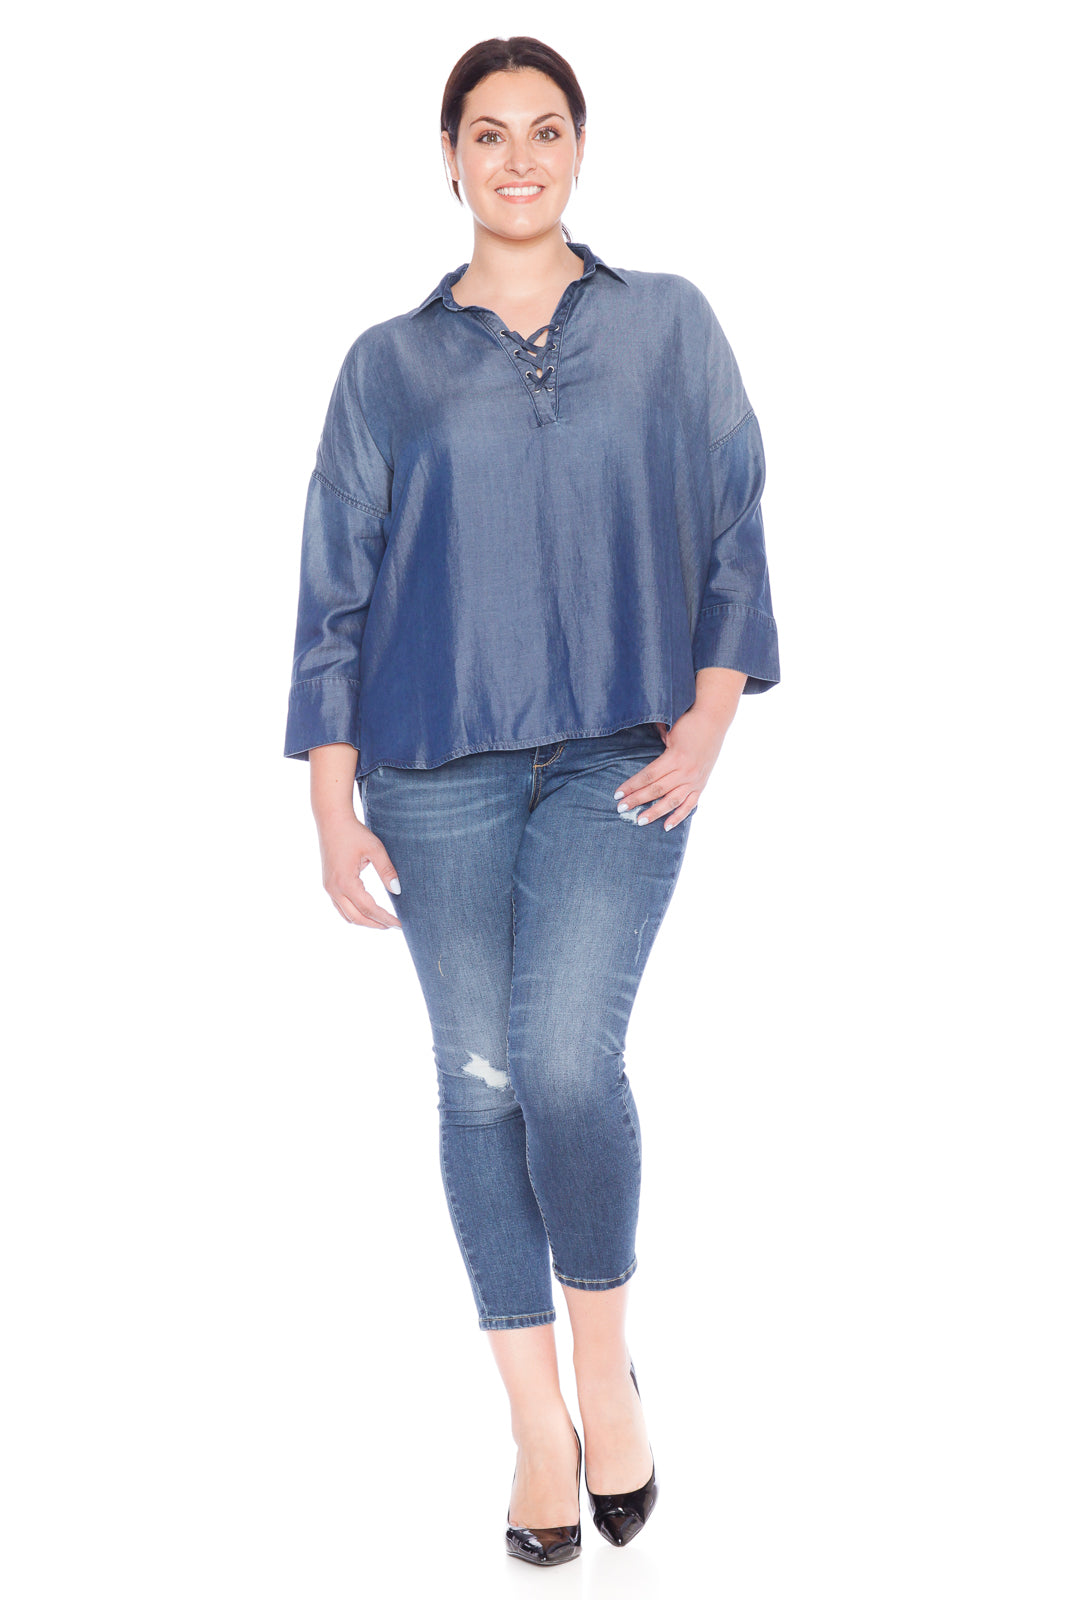 Lace Up Tencel Shirt - MIDNIGHT BLUE